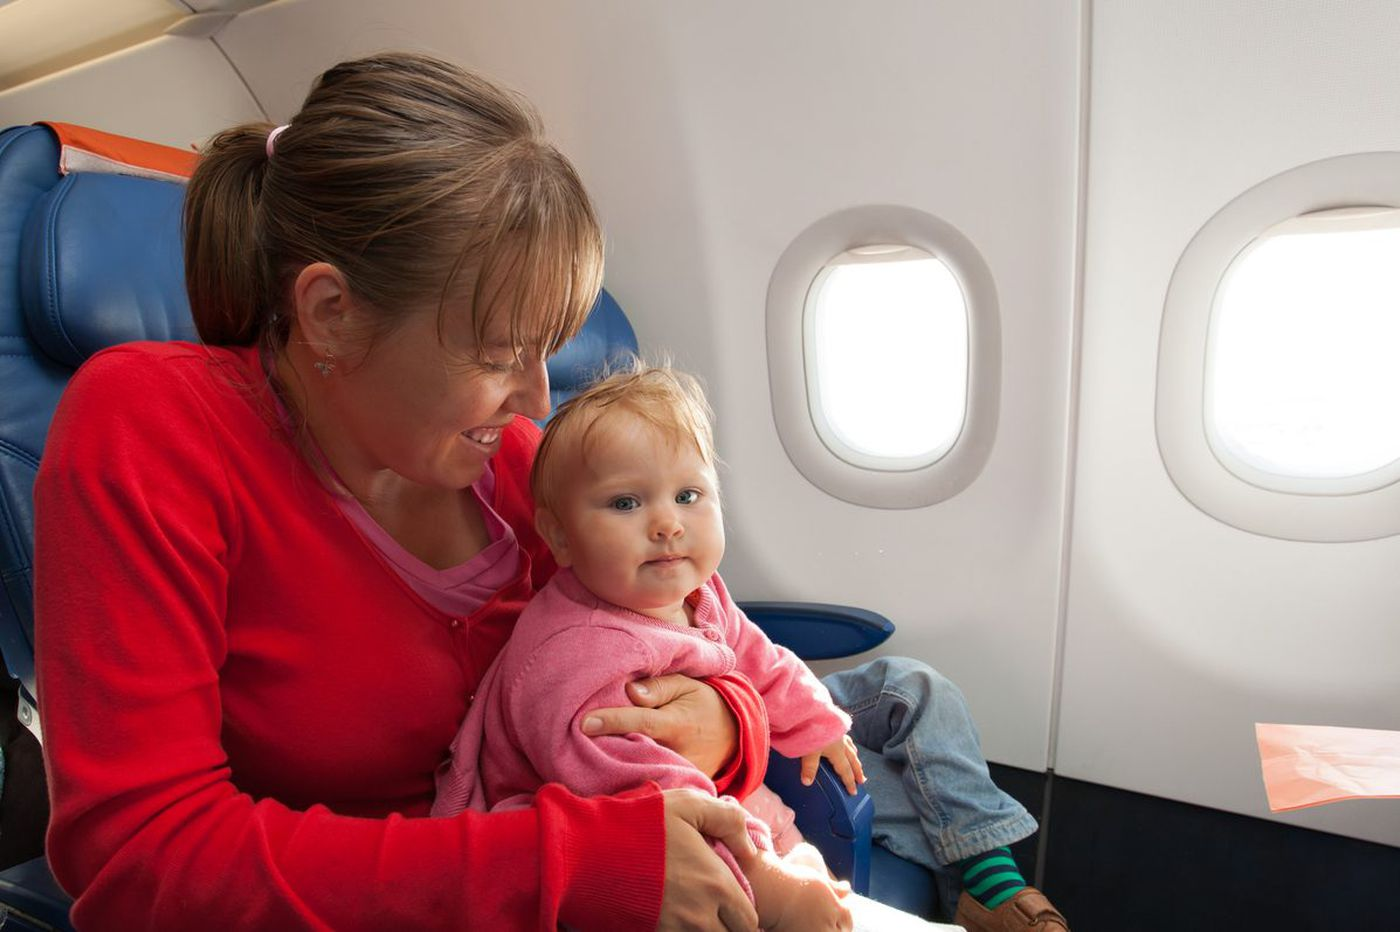 Crying babies, smelly seatmates: Top complaints on planes, transit, ride sharing